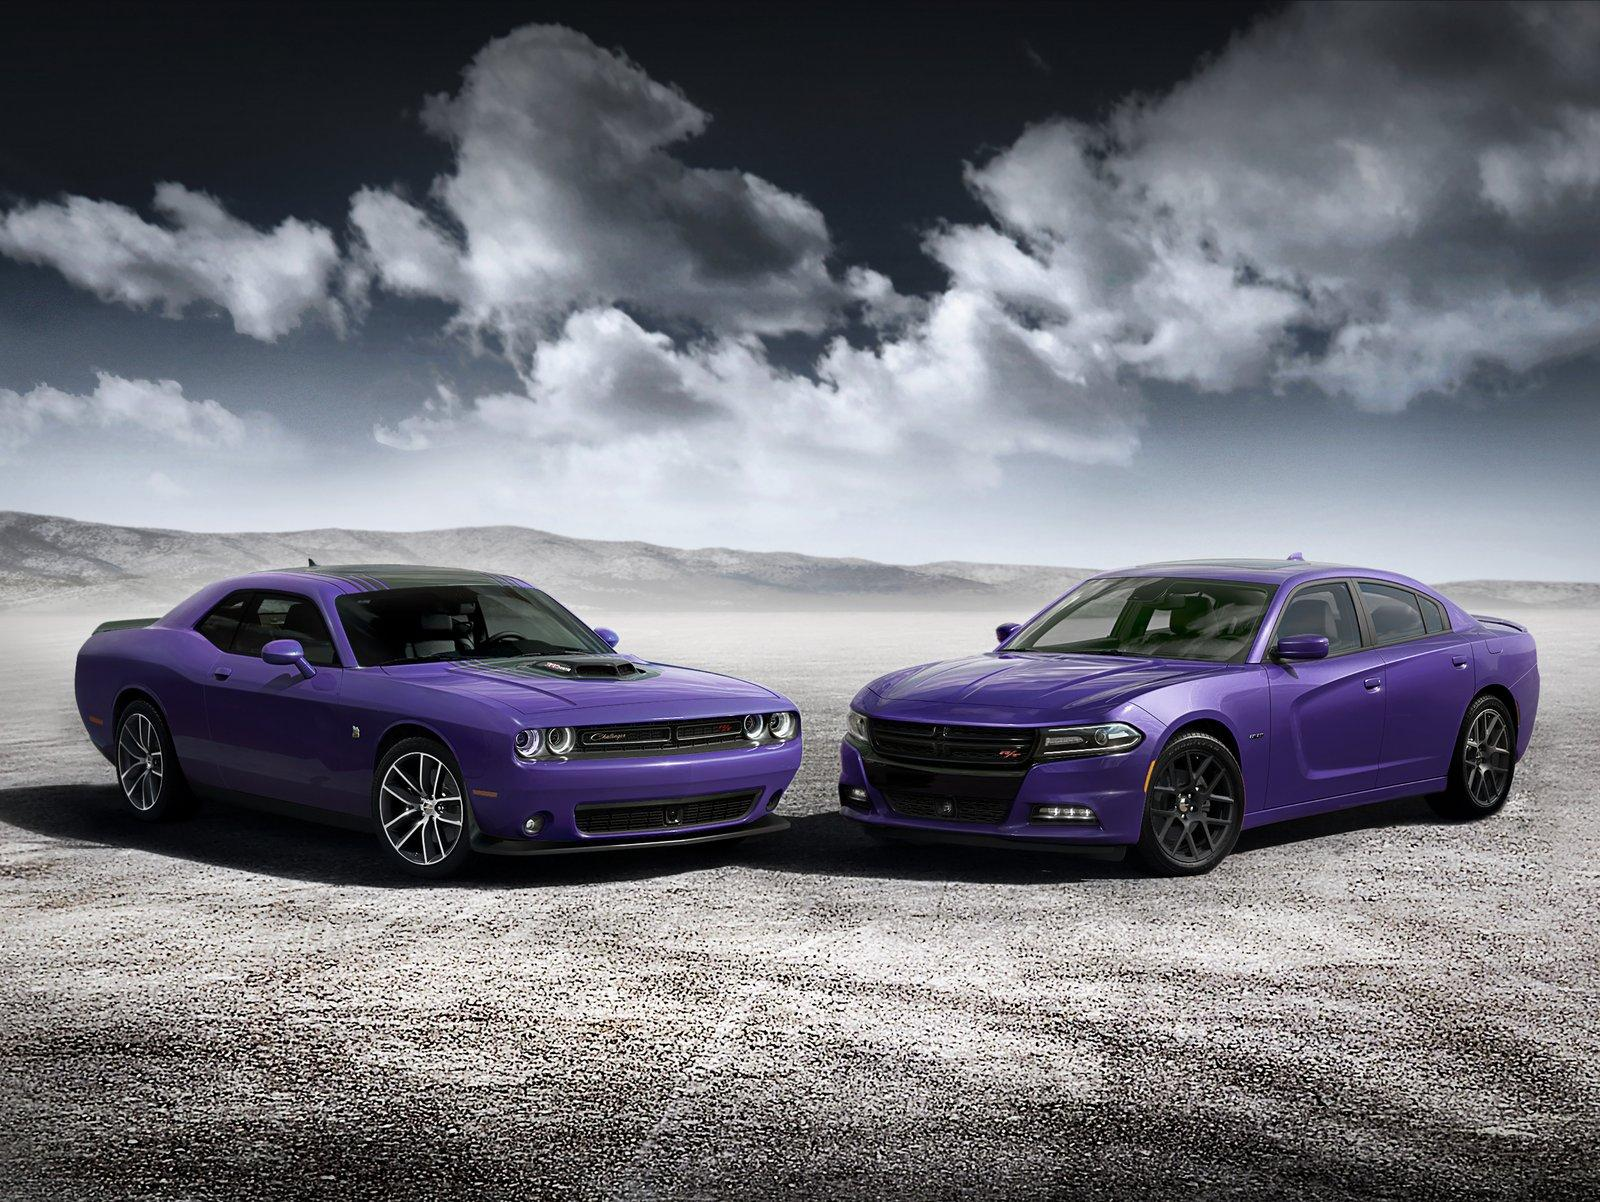 2016 dodge challenger order date and details revealed plum crazy pearl finish confirmed. Black Bedroom Furniture Sets. Home Design Ideas